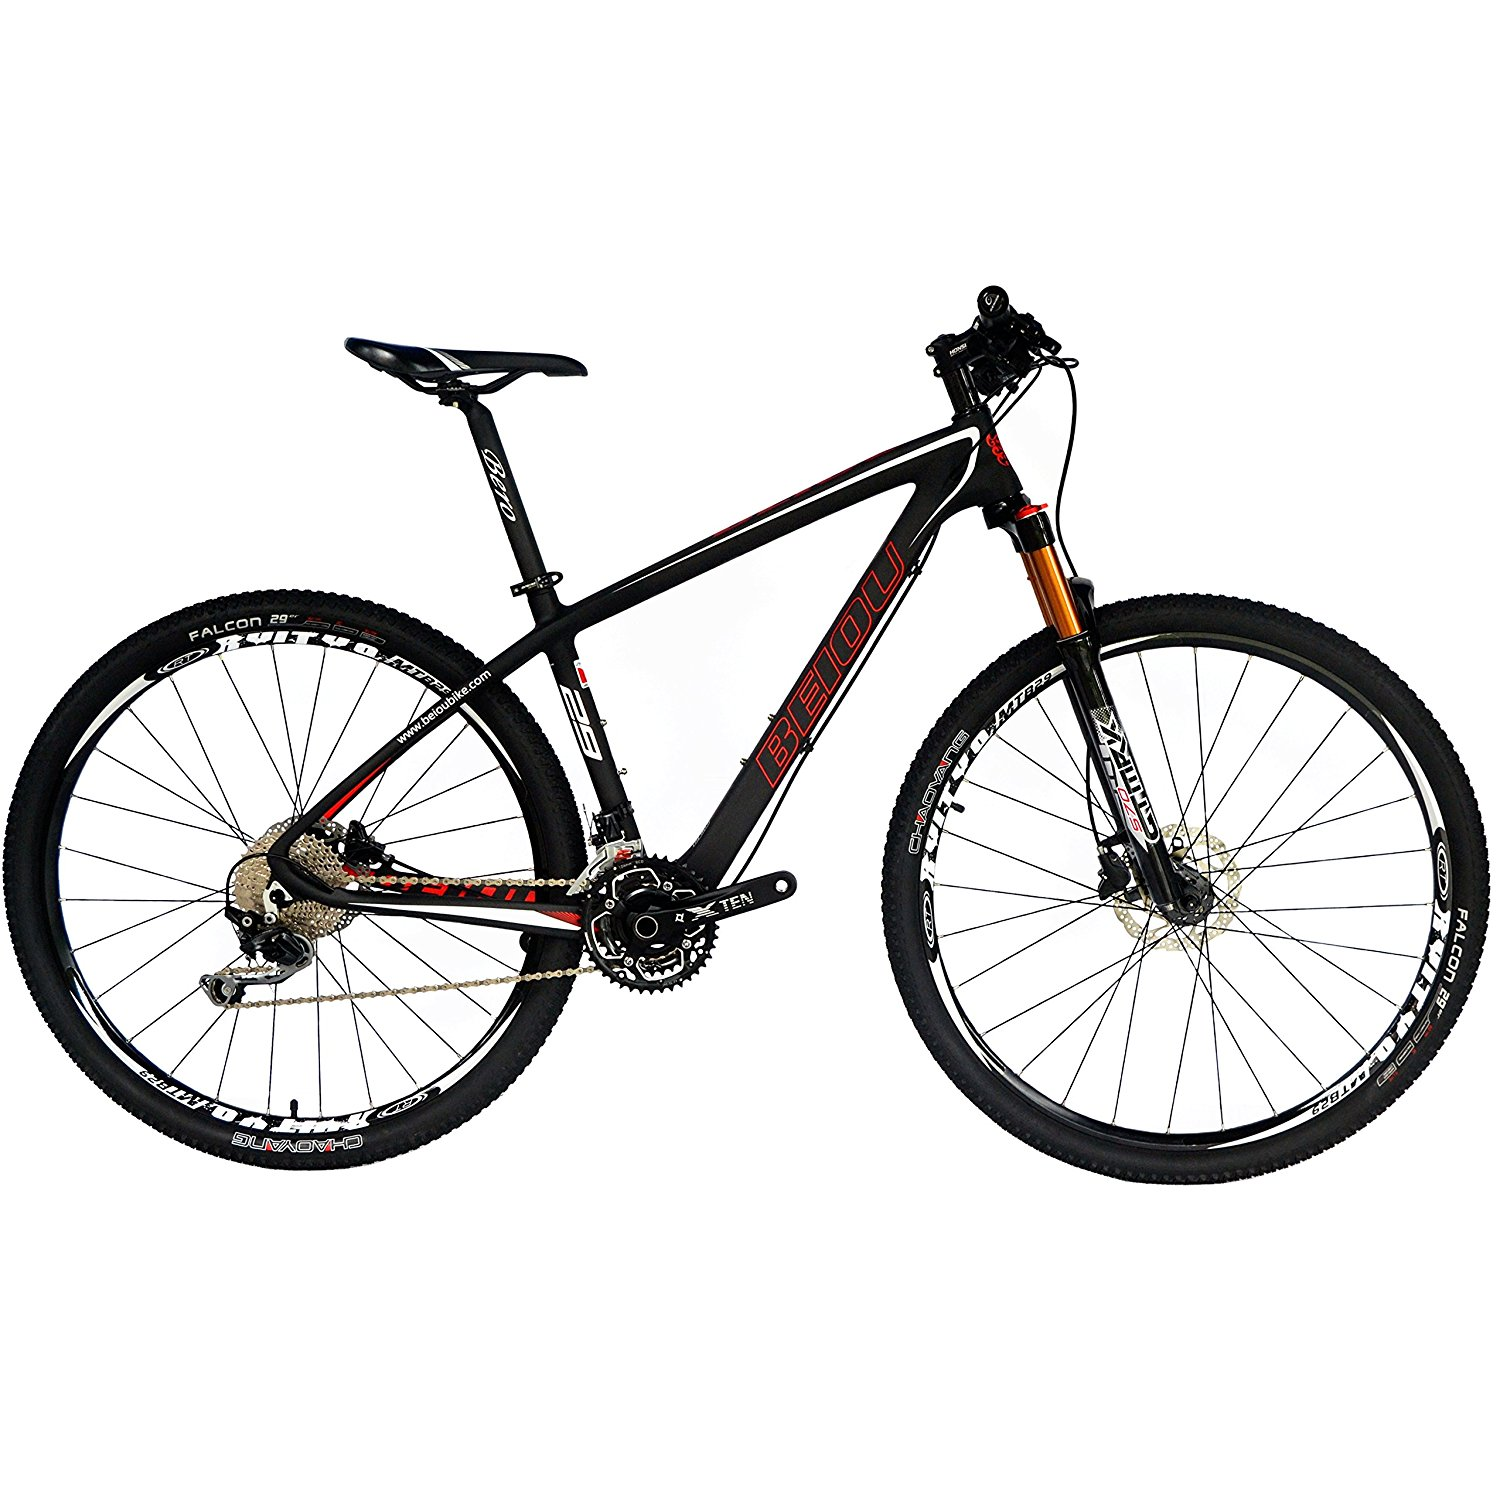 BEIOU 650B bikebon fiber mountain bike